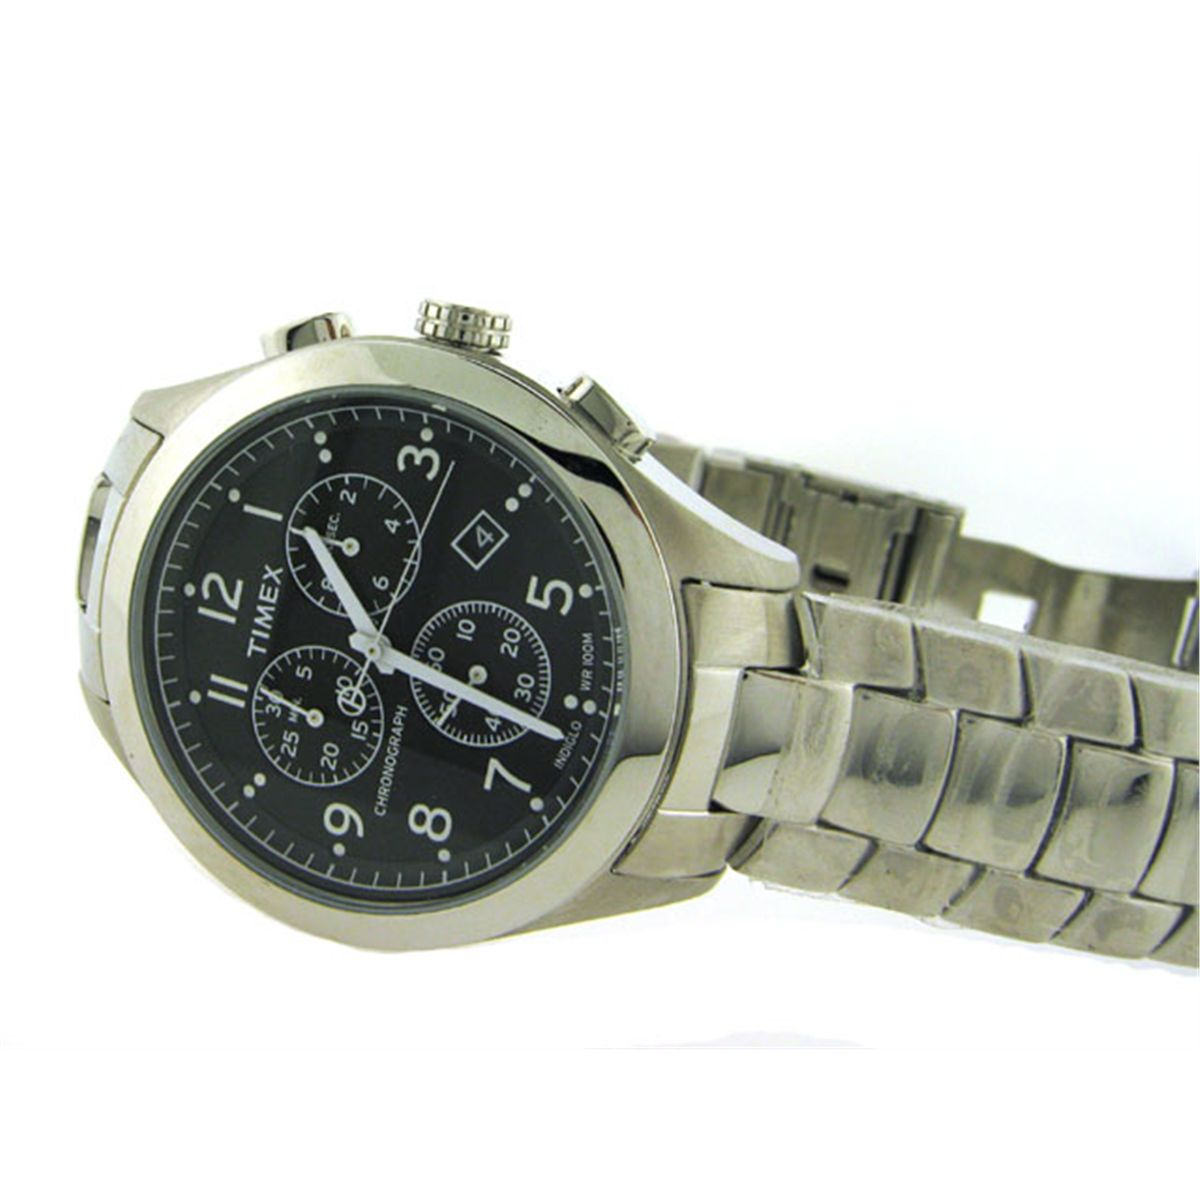 Timex Men S T Series Chronograph Silver Tone Stainless Steel Bracelet Watch T2m469